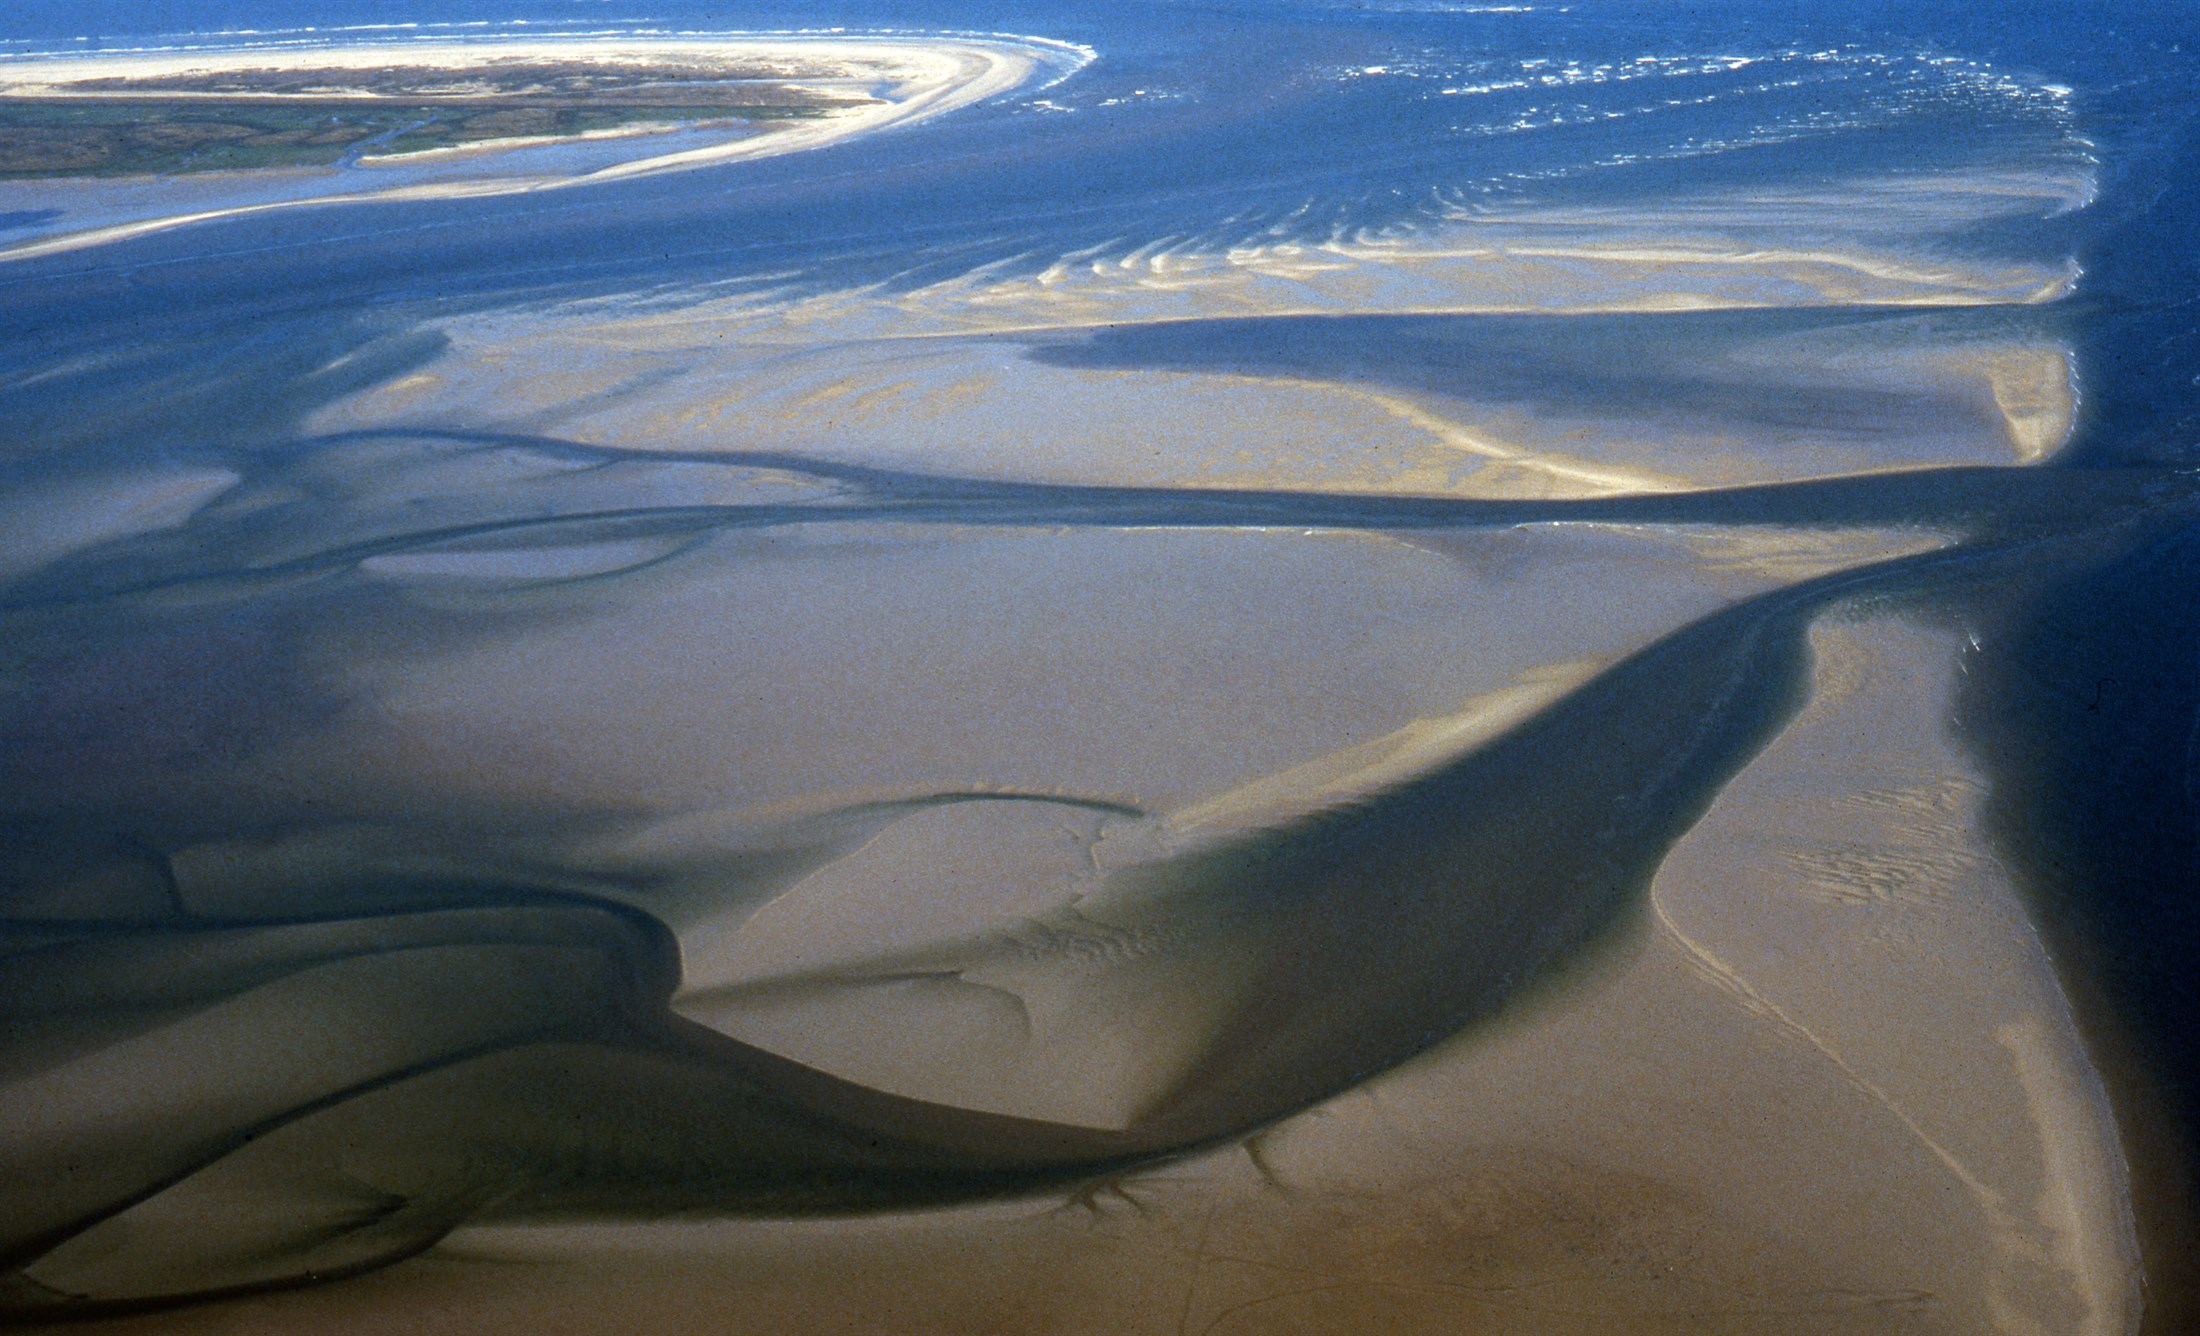 todal-mudflats-and-creeks-norderney-lower-saxony-wadden-sea-national-park-germany_ce45-2200x1336px